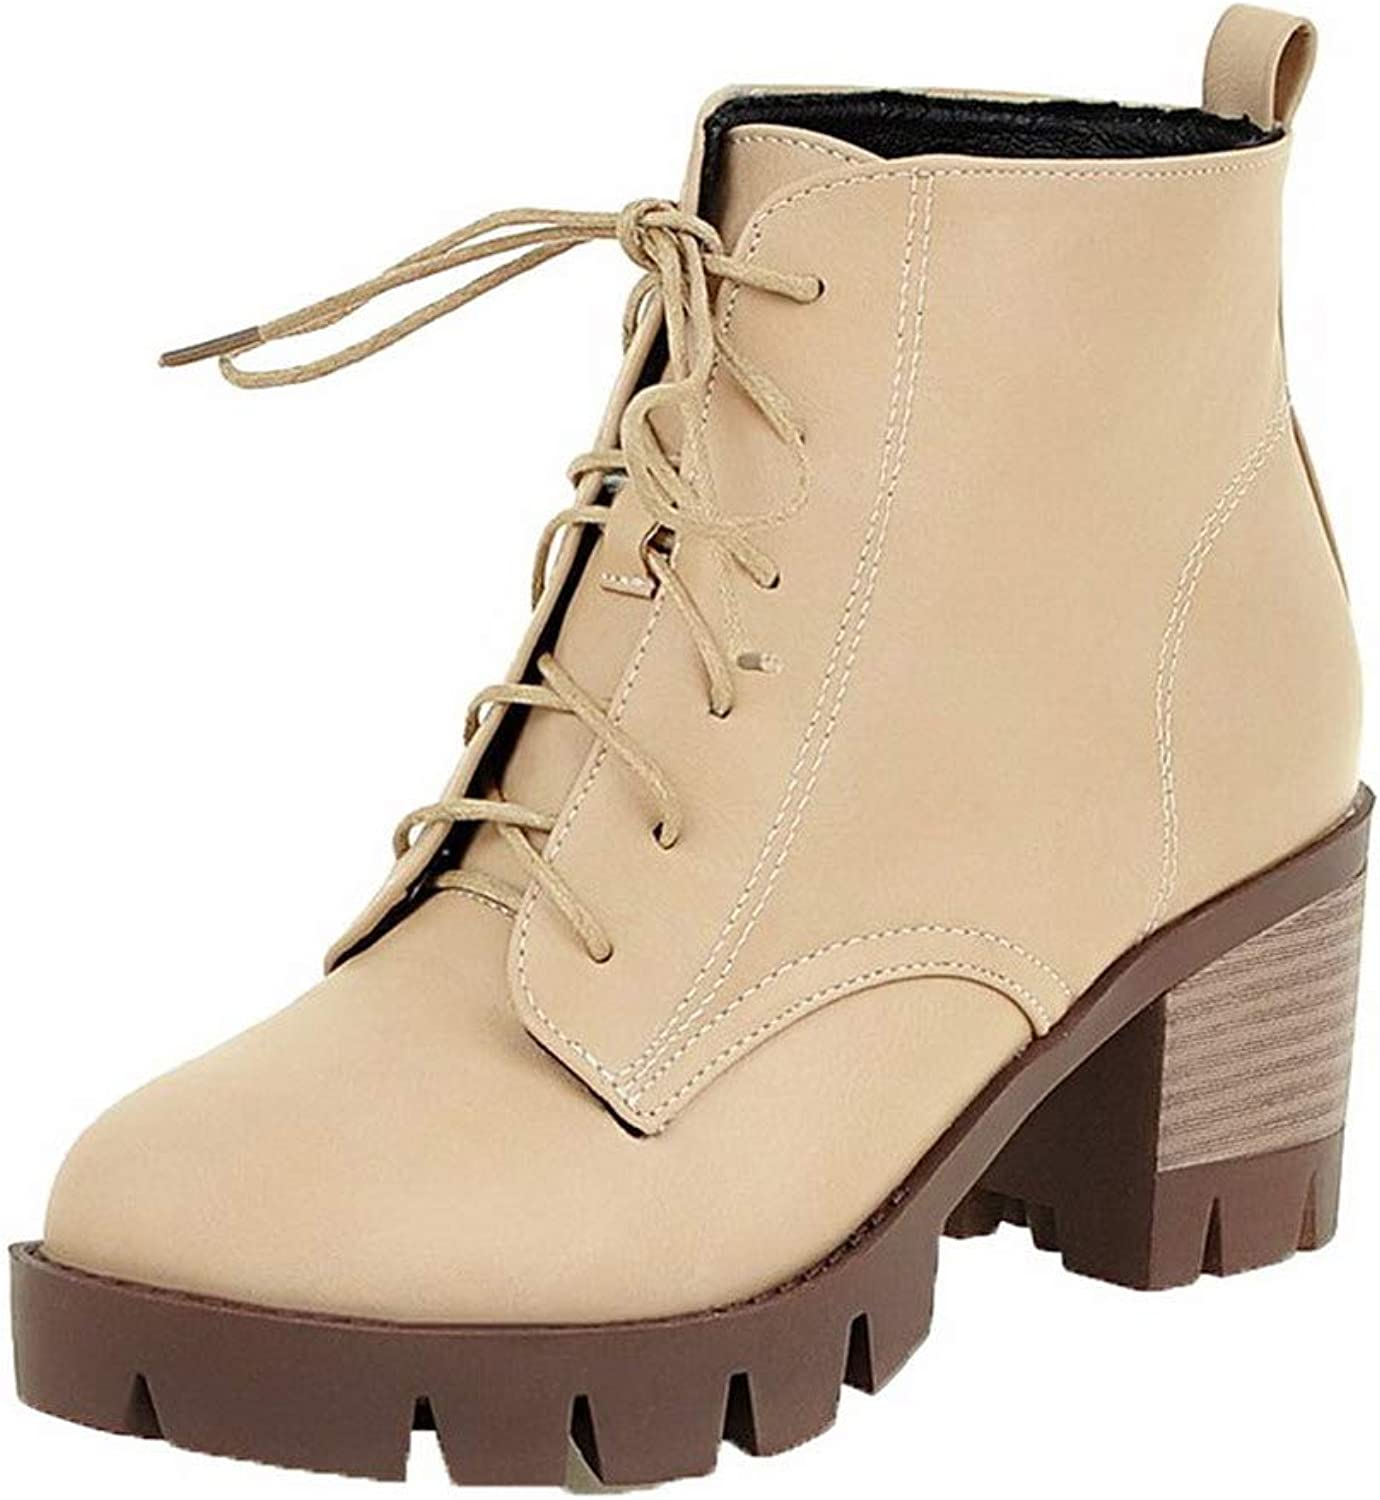 WeenFashion Women's Lace-Up Round-Toe Kitten-Heels Pu Low-Top Boots, AMGXX011056